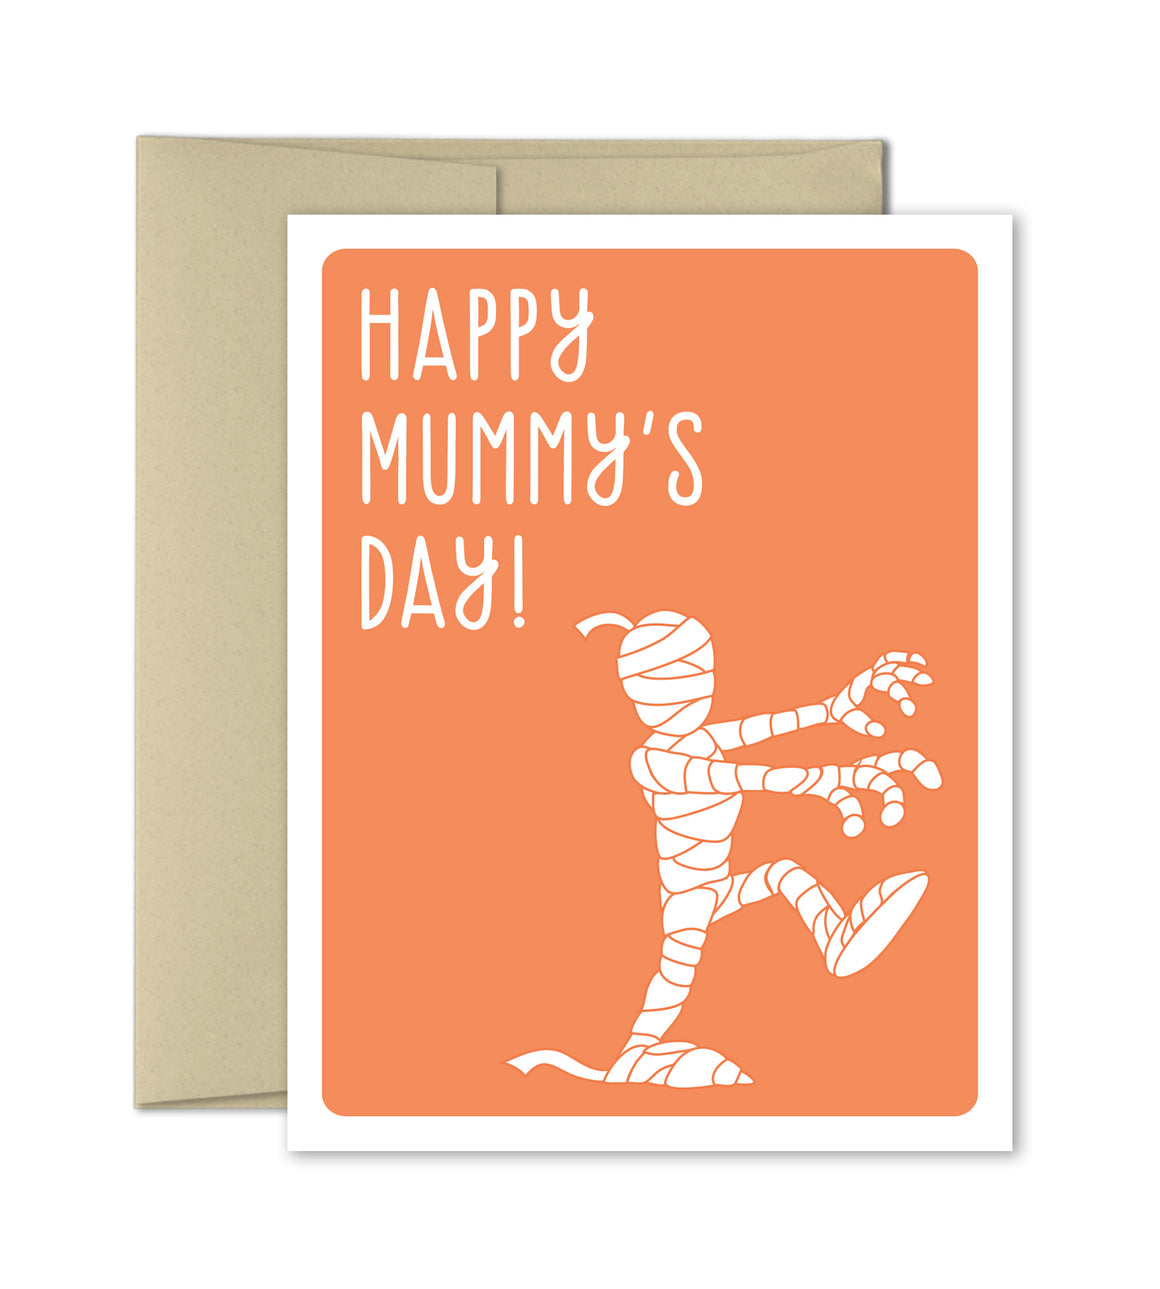 Funny Card for Mom - Happy Mummy's Day - The Imagination Spot - 1